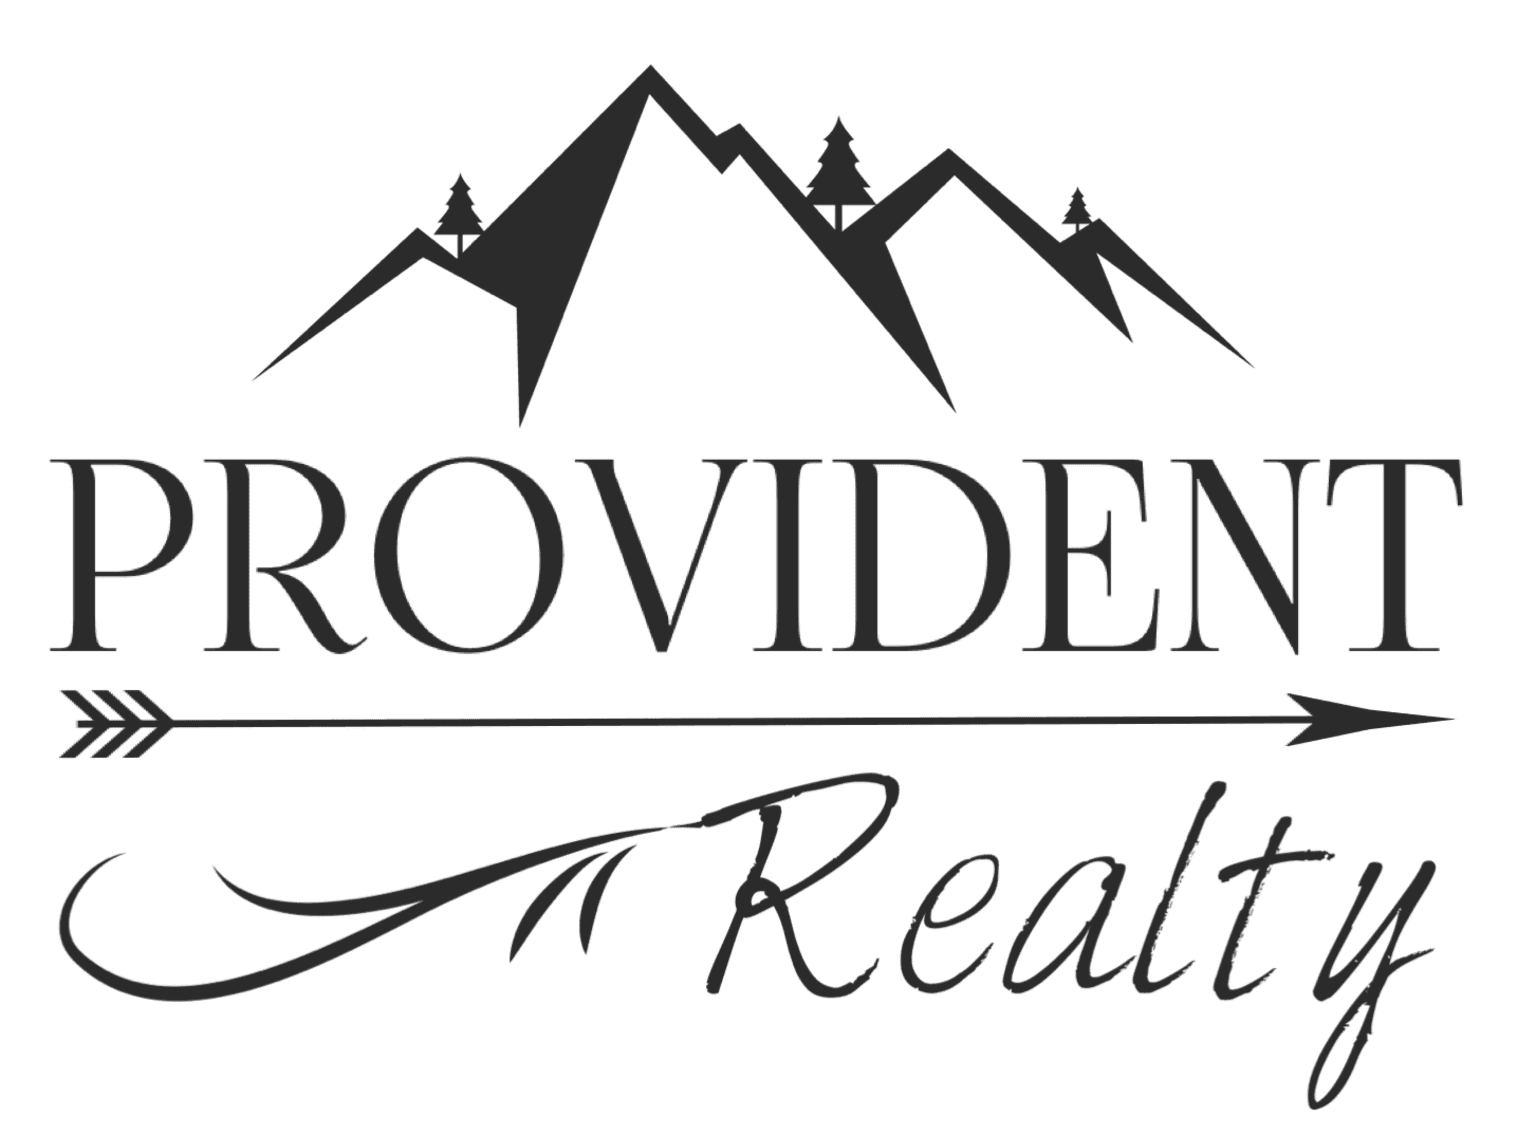 Provident Realty